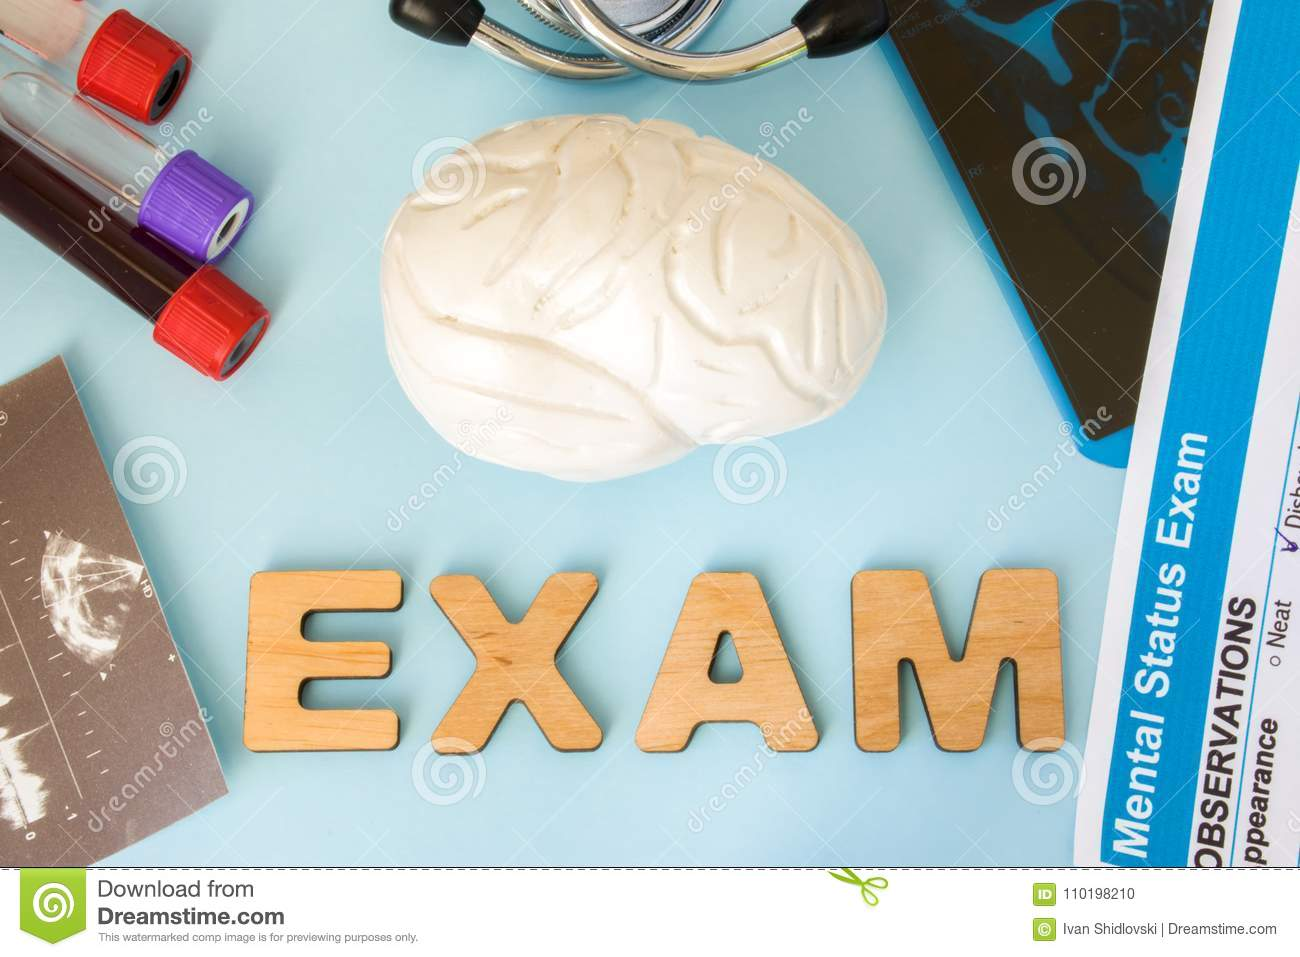 Brain Or Central And Peripheral Nervous System Examination, Tests ...